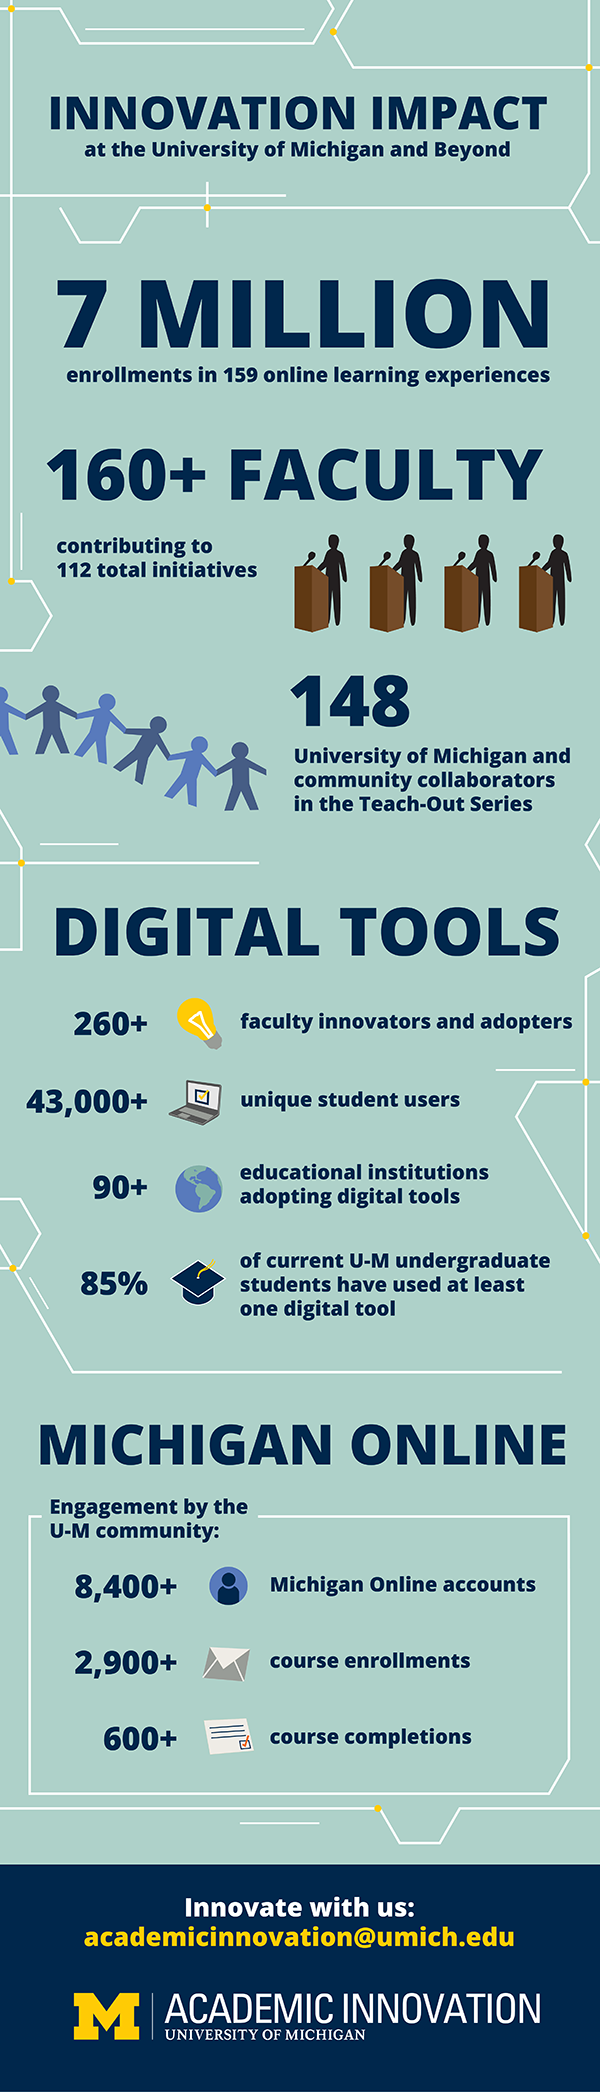 "An illustrated infographic titled ""Innovation Impact at the University of Michigan and Beyond"" including the following data points: 7 Million enrollments in 159 online learning experiences. 160+ faculty contributing to 112 total initiatives. 148 University of Michigan and community collaborators in the Teach-Out series. Digital tools section: 260+ faculty innovators and adopters. 42,000+ unique student users. 90+ educational institutions adopting digital tools. 85% of current University of Michigan undergraduate students have used at least one digital tool. Michigan Online section: Engagement by the University of Michigan community: 8,400+ Michigan Online accounts. 2,900+ course enrollments. 600+ course completions. The end of the infographic reads: Innovate with us: academicinnovation@umich.edu. The University of Michigan Office of Academic Innovation logo is displayed below."